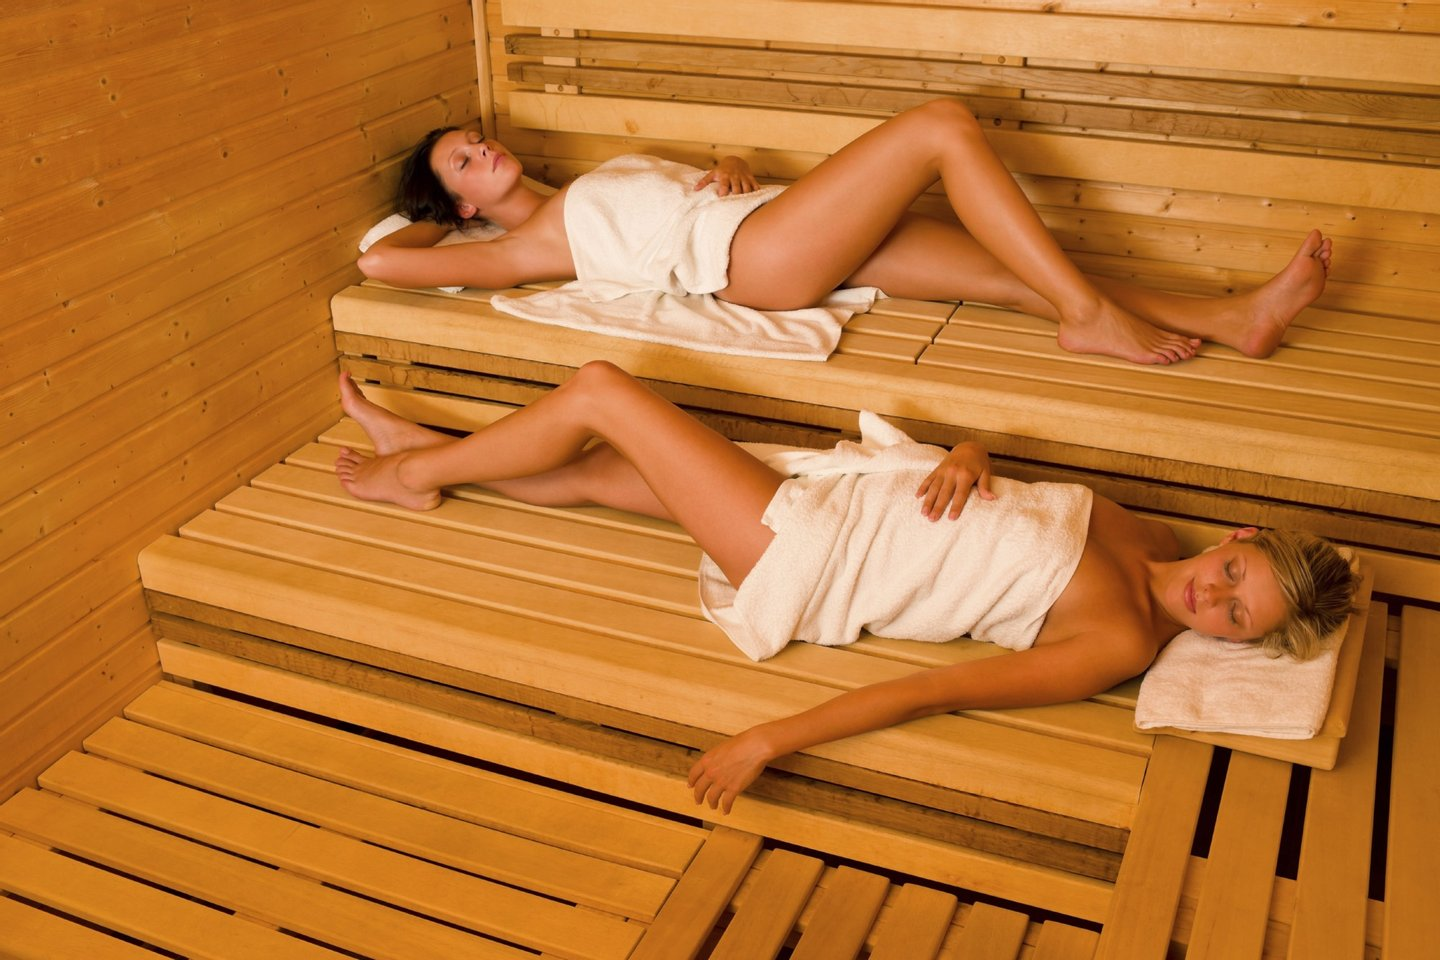 adult, attractive, beautiful, beauty, bench, body, care, caucasian, comfortable, dry, enjoying, female, friends, harmony, health, healthcare, healthy, heat, hot, leisure, lifestyle, luxury, lying, people, perspiration, relax, rest, sauna, skin, sweat, therapy, towel, treatment, two, vitality, warm, wellbeing, wellness, wet, woman, women, wood, wrapped, young,